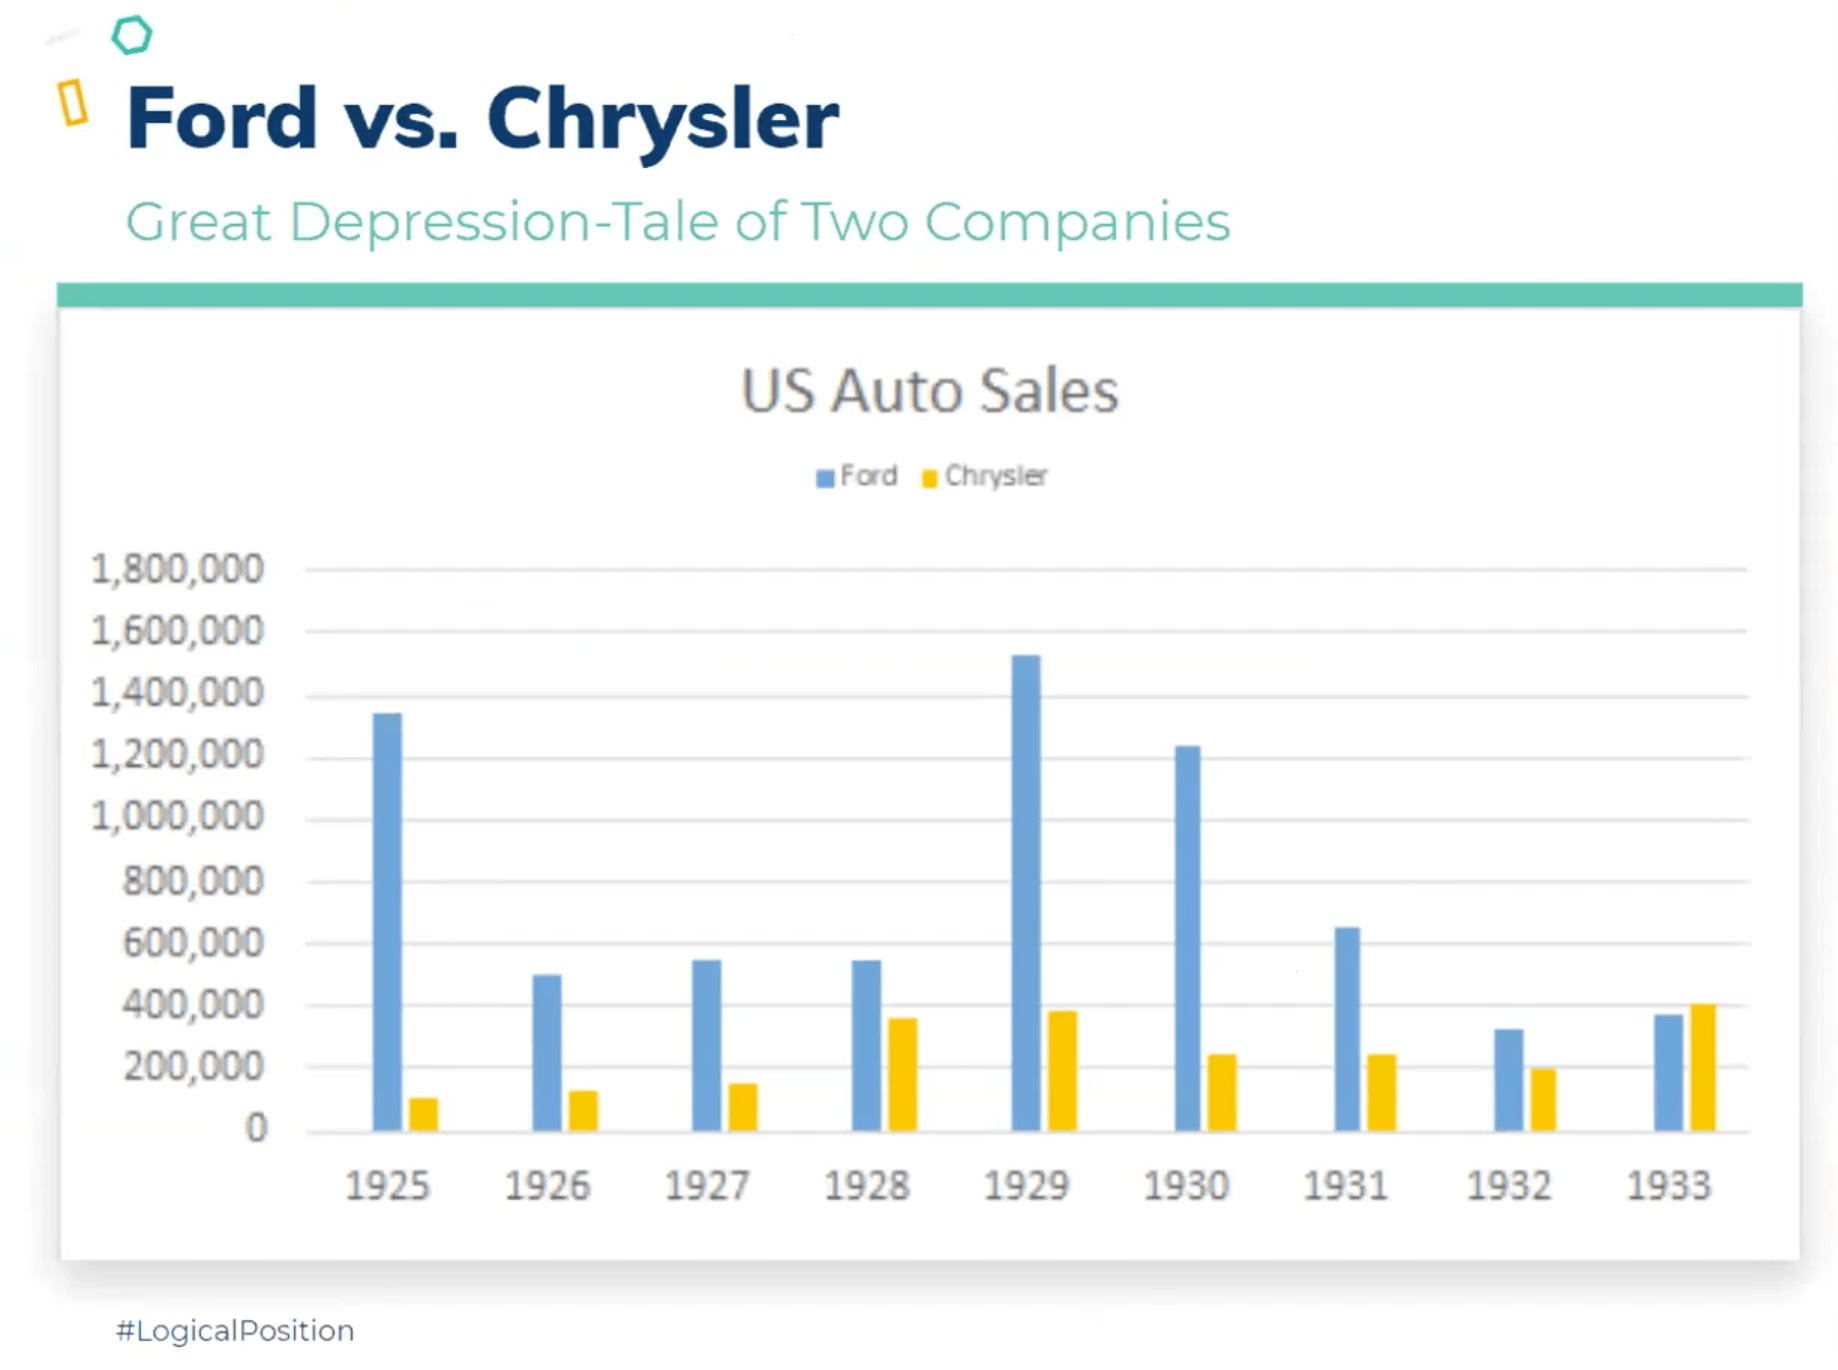 Ford-vs-Chrysler-Great-Depression